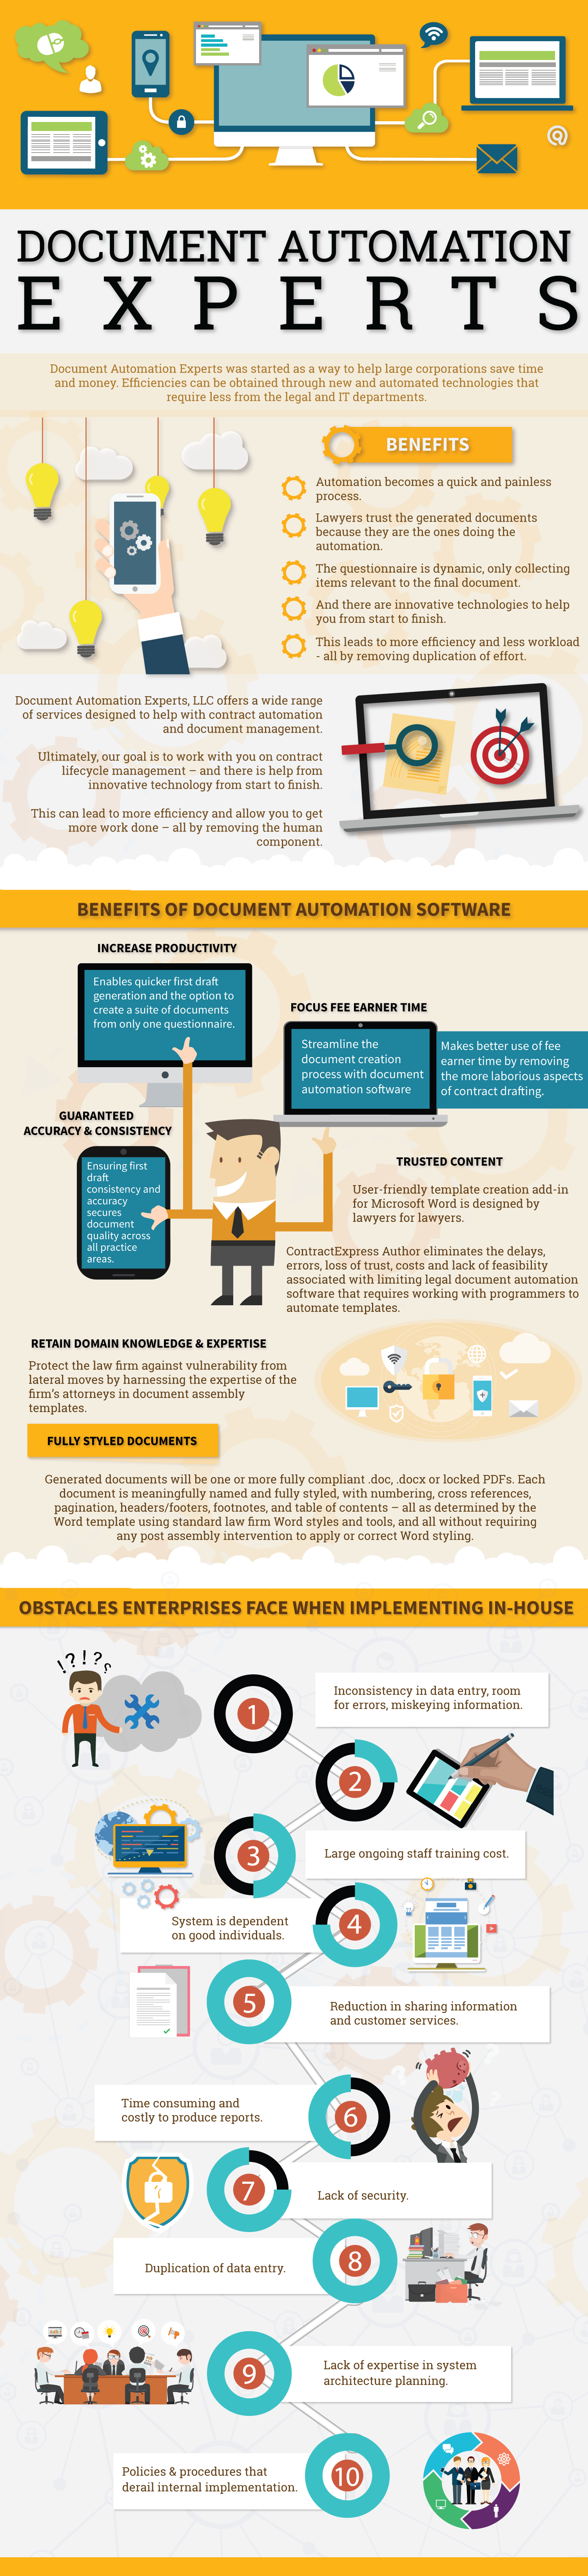 Document Automation Experts Infographic